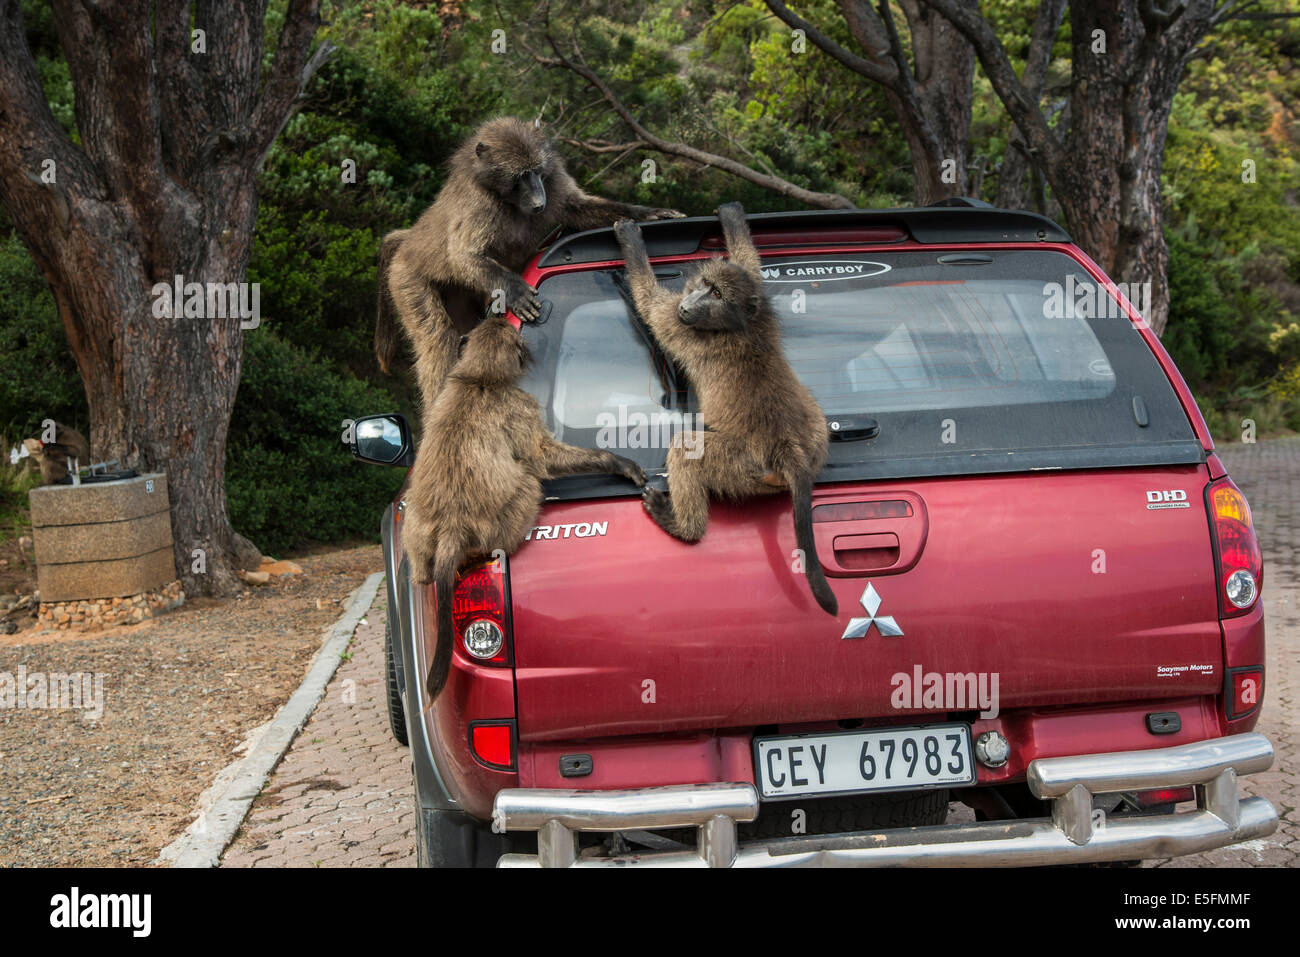 Chacma Baboons (Papio ursinus) playing on a parked car, Clarence Drive, Gordon's Bay, Western Cape, South Africa - Stock Image